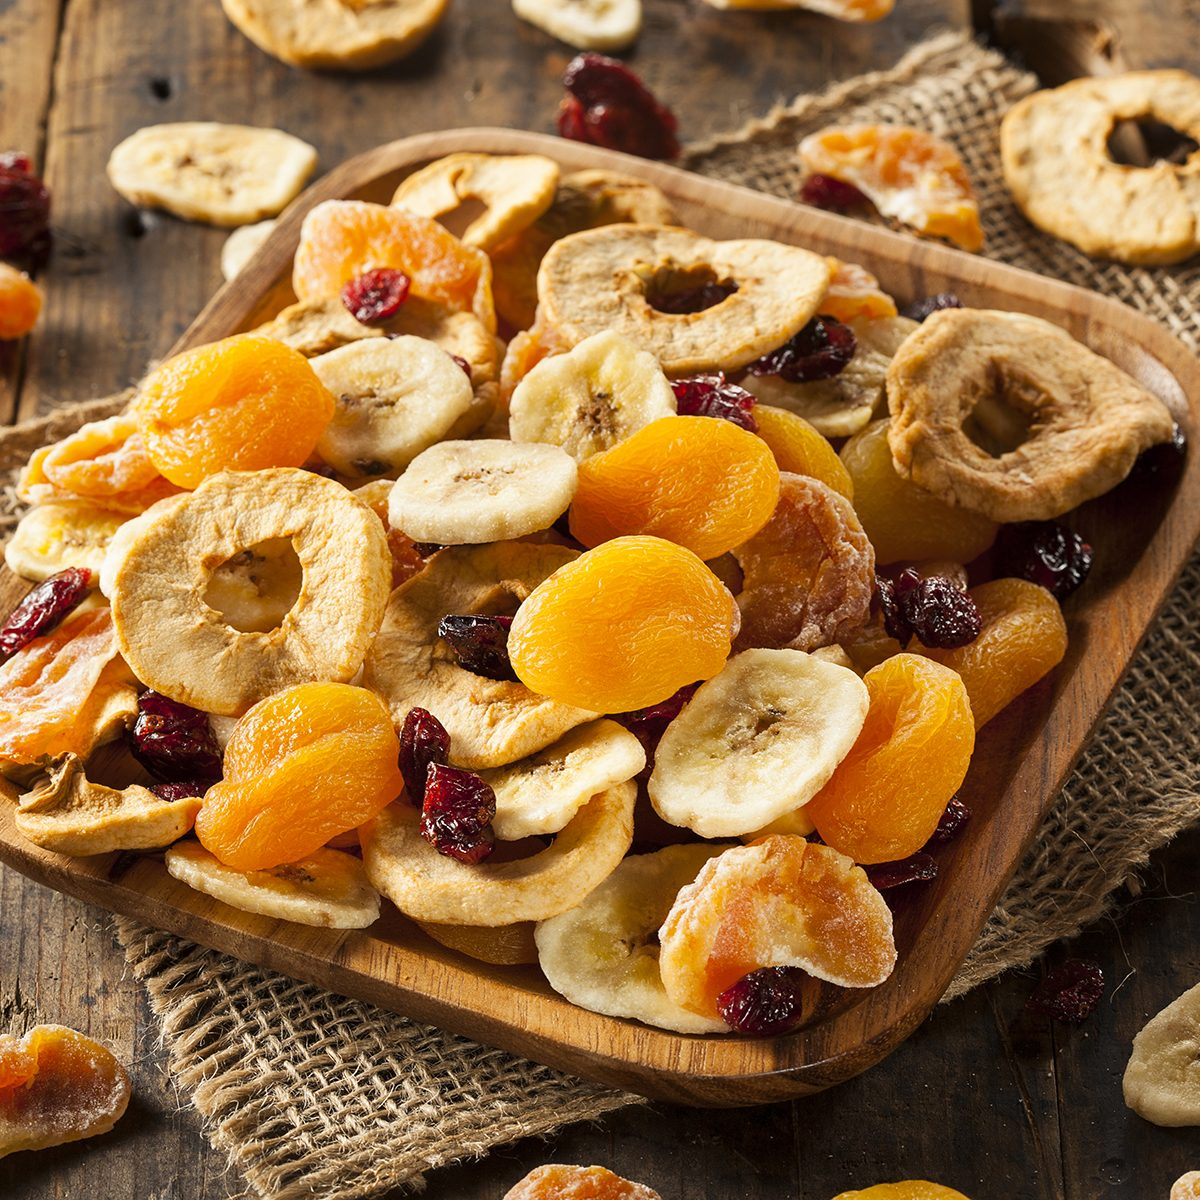 Organic Healthy Assorted Dried Fruit on a Plate